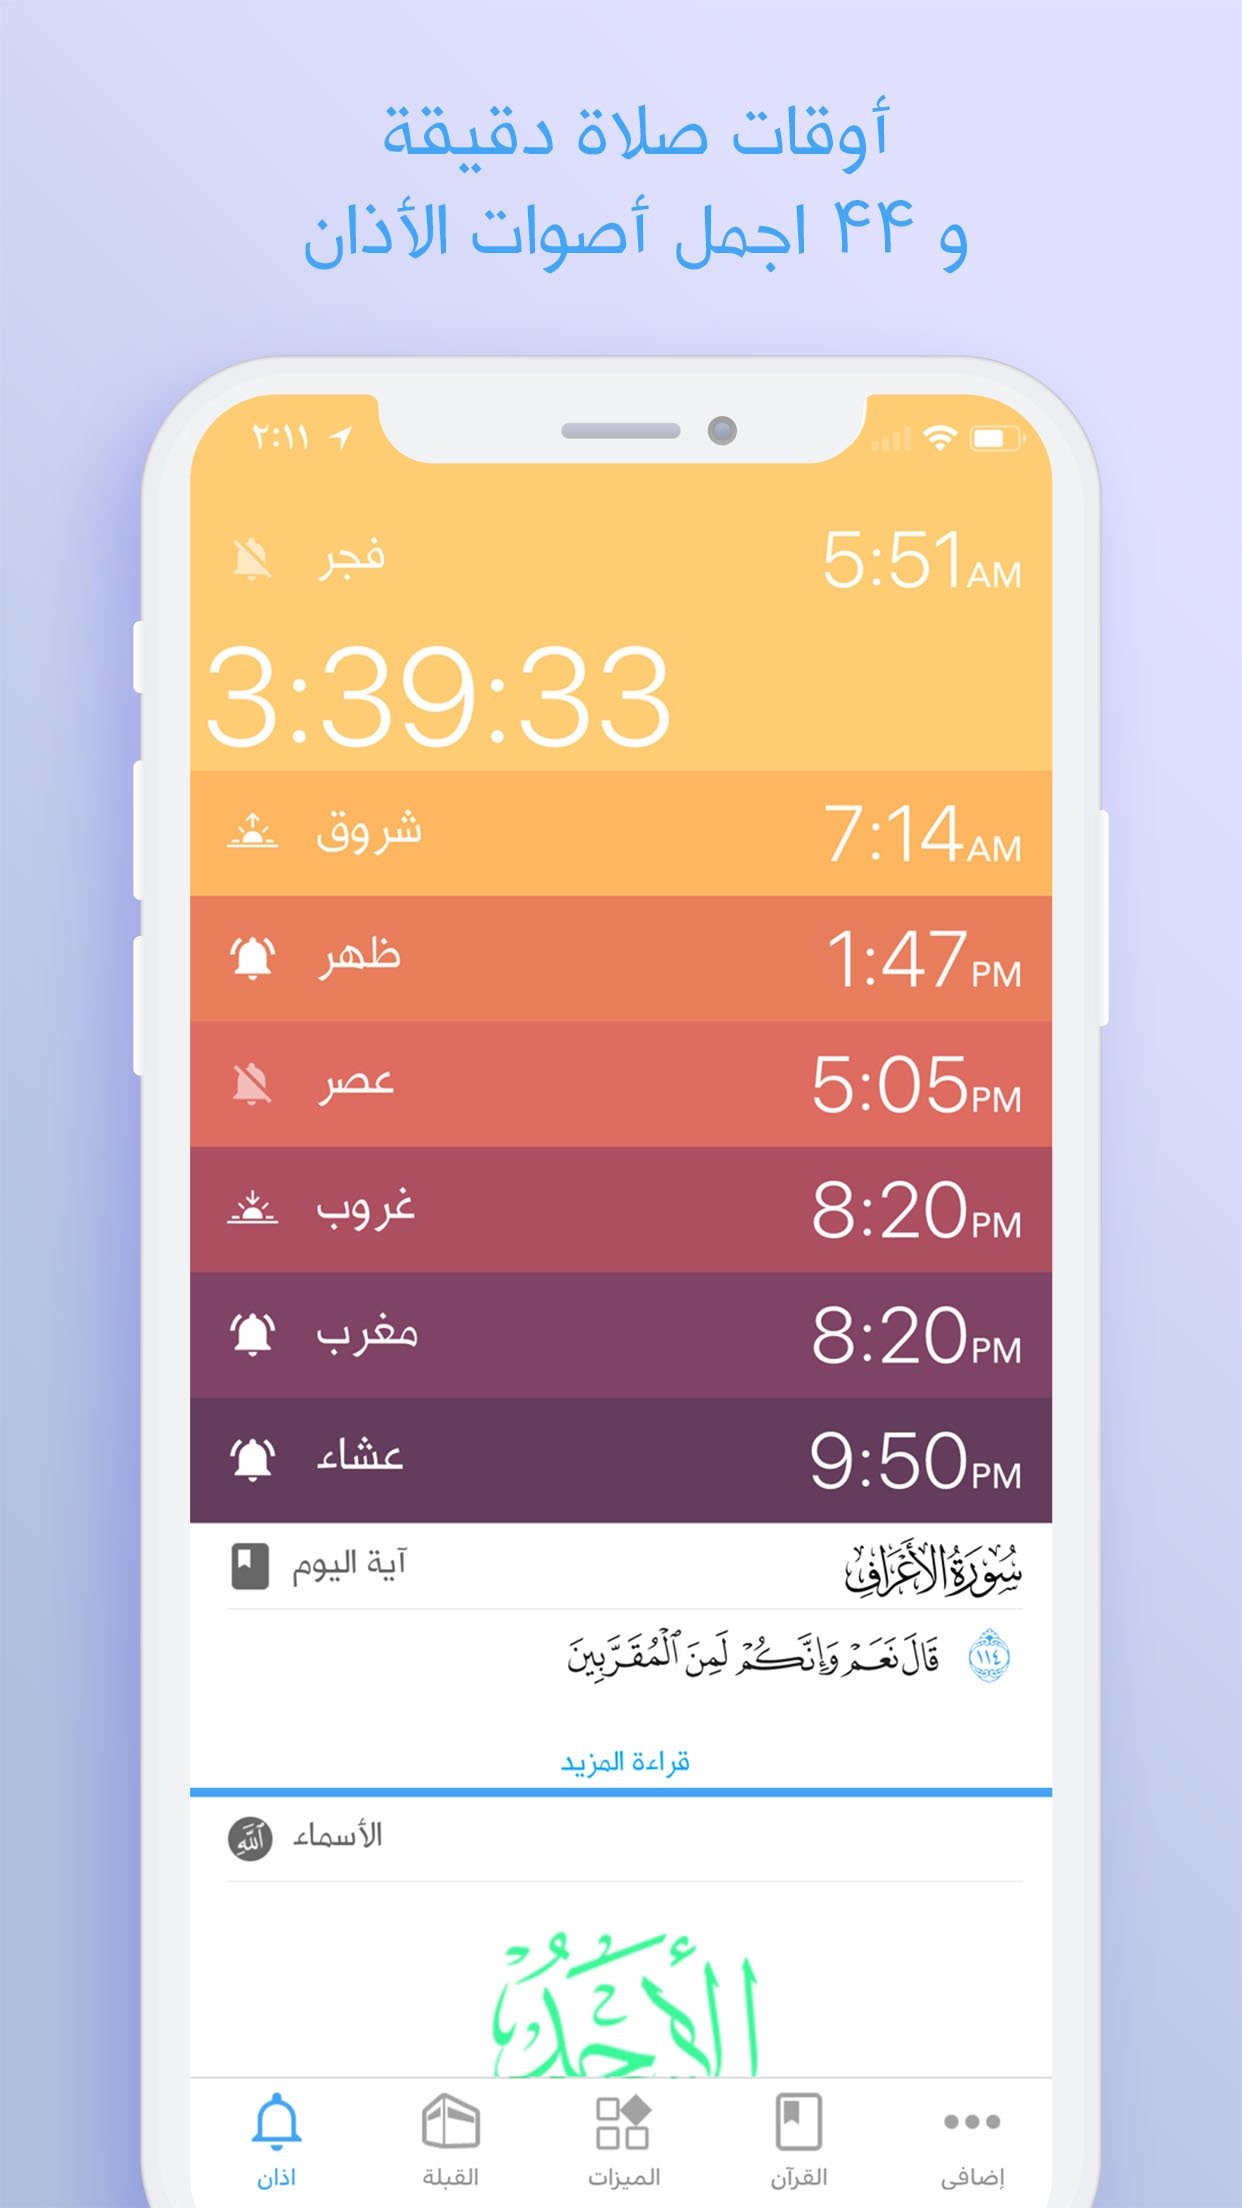 صلاتي الاذان قرآن) اذان) azan Screenshot